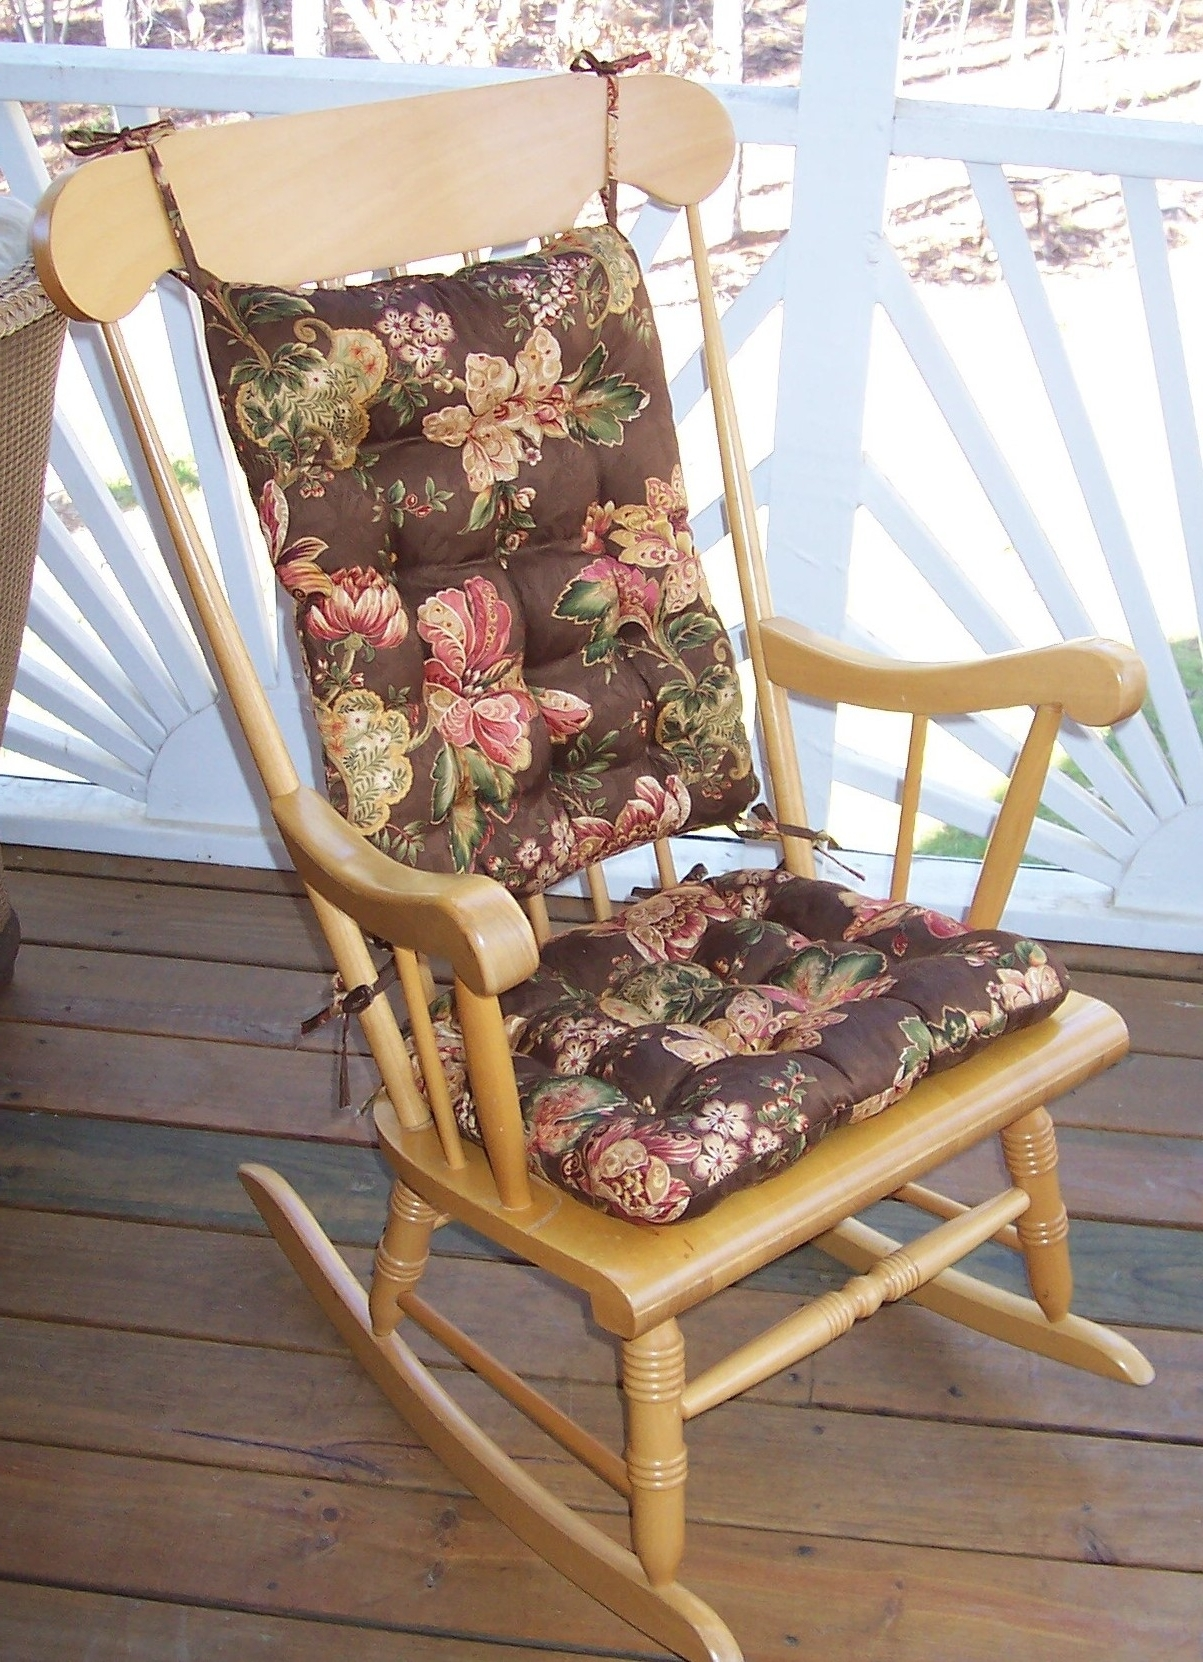 Fashionable Rocking Chairs With Cushions Inside Rocking Chair Cushion Sets And More – Clearance!! (View 10 of 20)